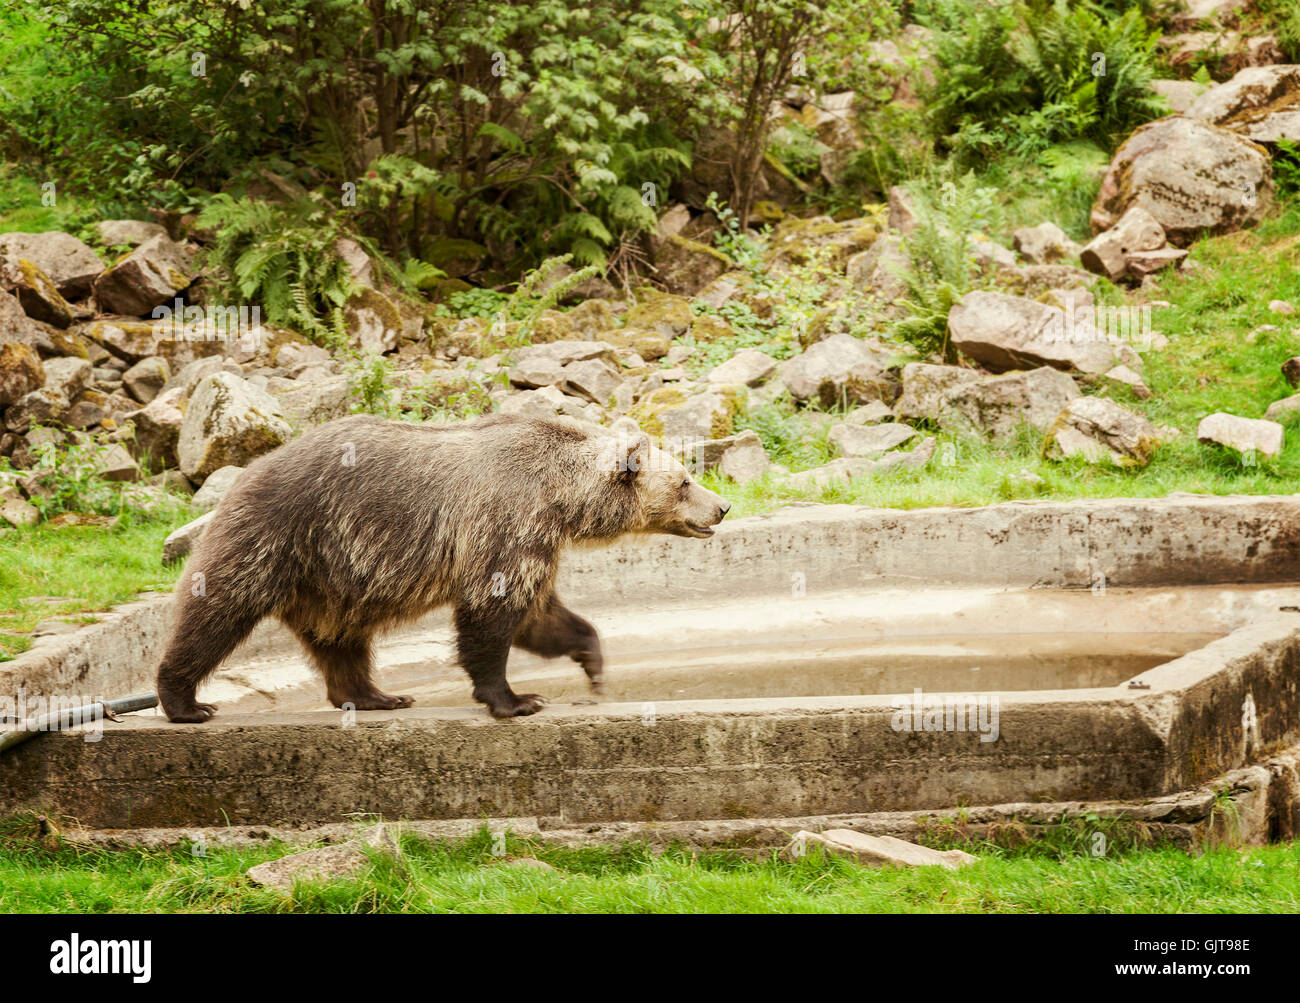 Image of a brown bear at animal park. Sweden. - Stock Image